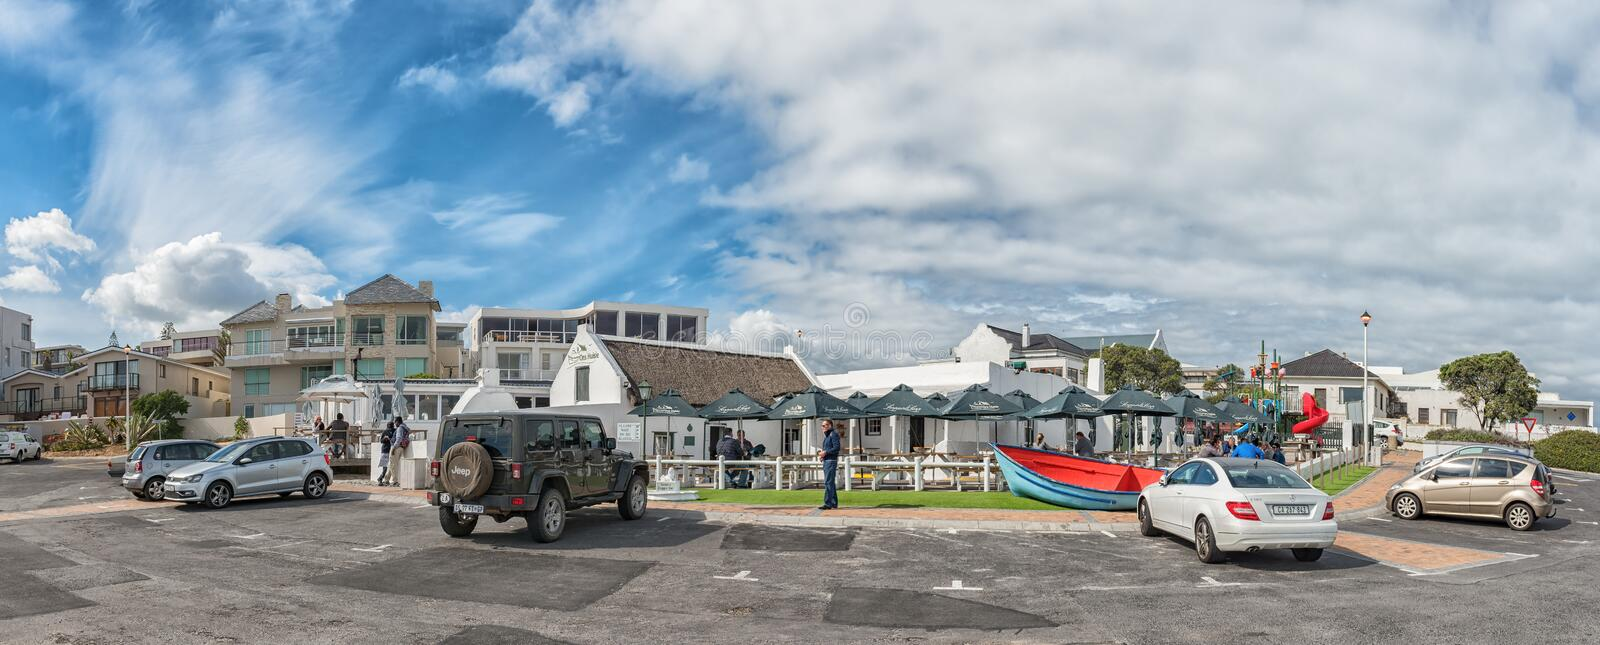 Ons Huisie, a beachfront restaurant in Bloubergstrand royalty free stock photo